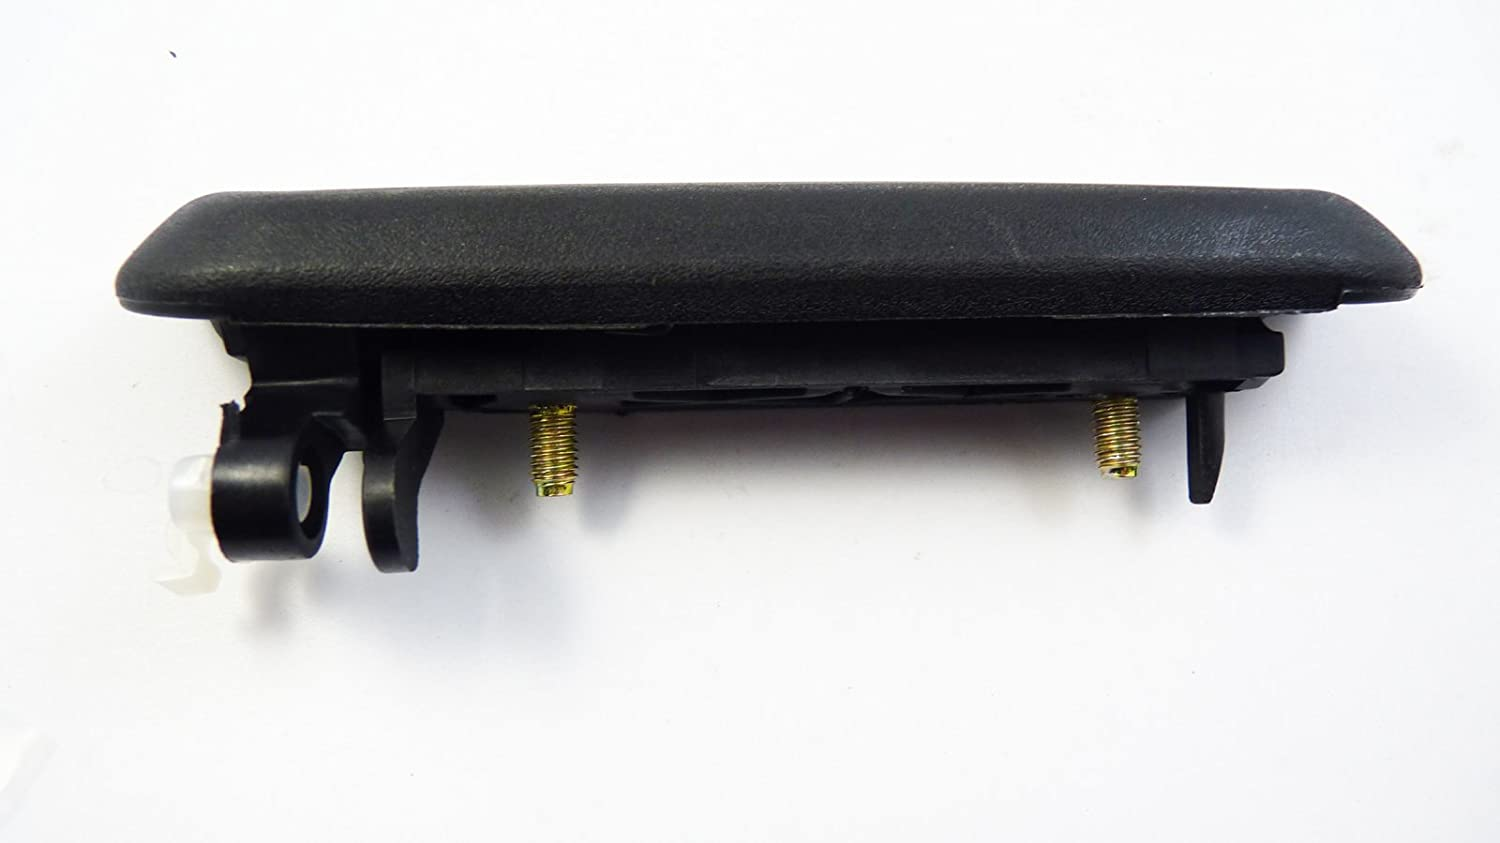 New Exterior Outer Door Handle Driver Front Left FL 69220-0A010 For Toyota Tercel 1995-1998